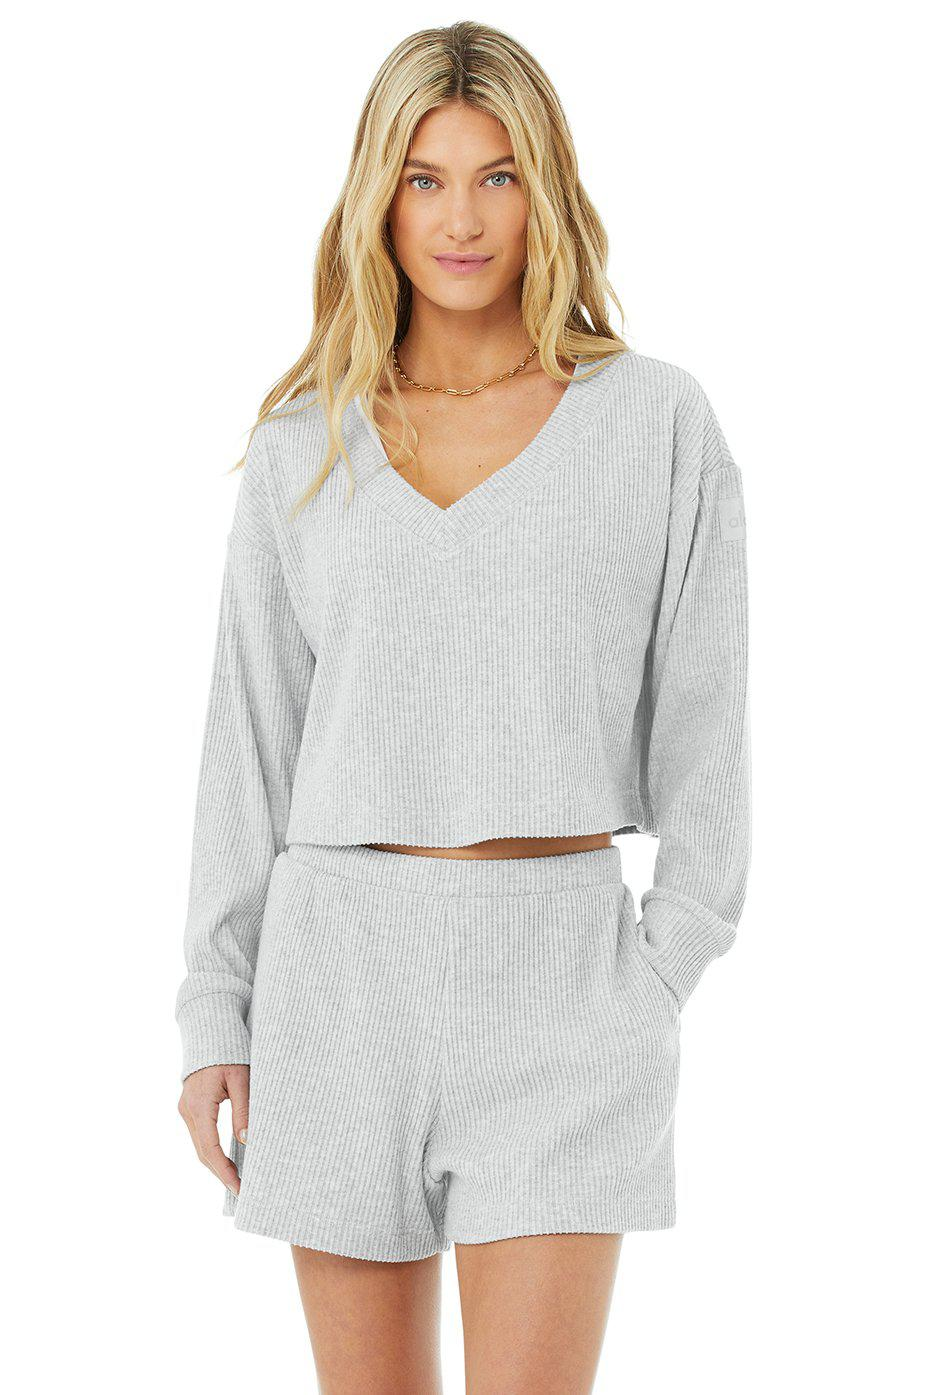 Muse V-Neck Pullover - Athletic Heather Grey